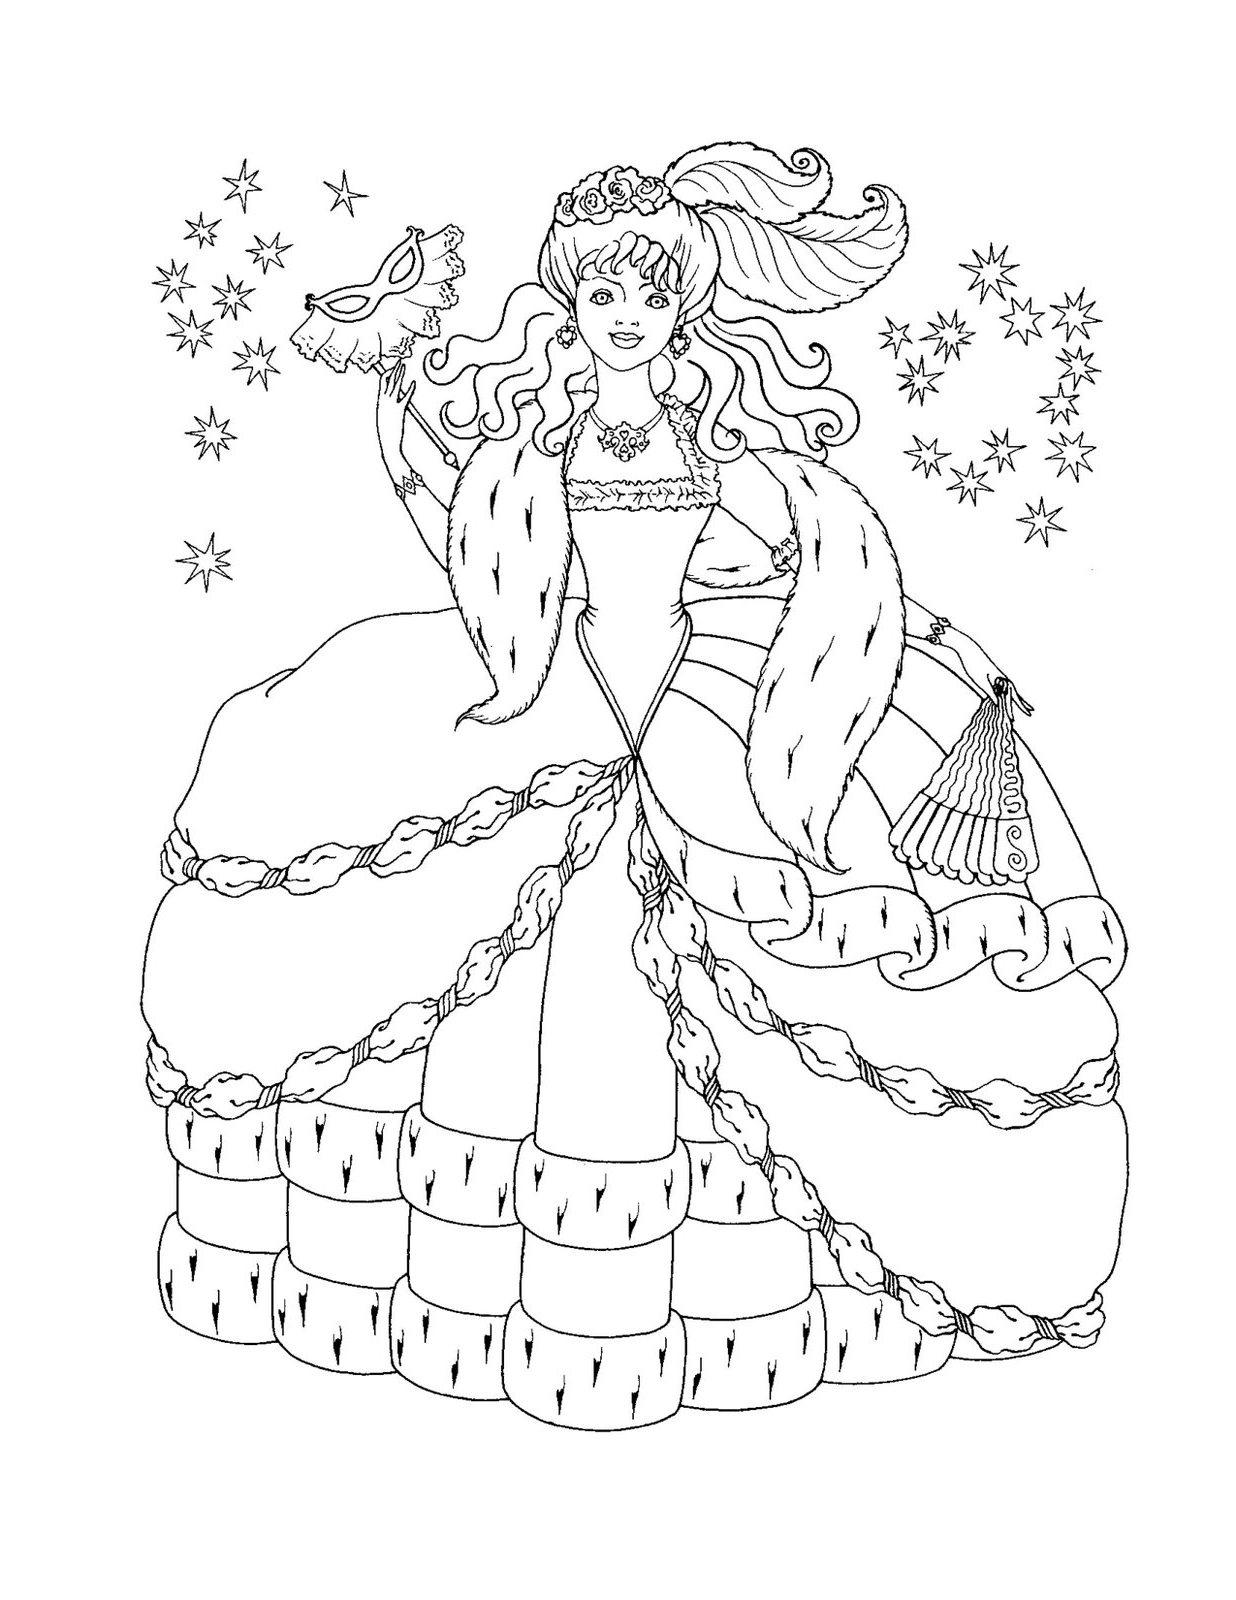 Free Printable Disney Princess Coloring Pages For Kids Princess Coloring Paper Printable